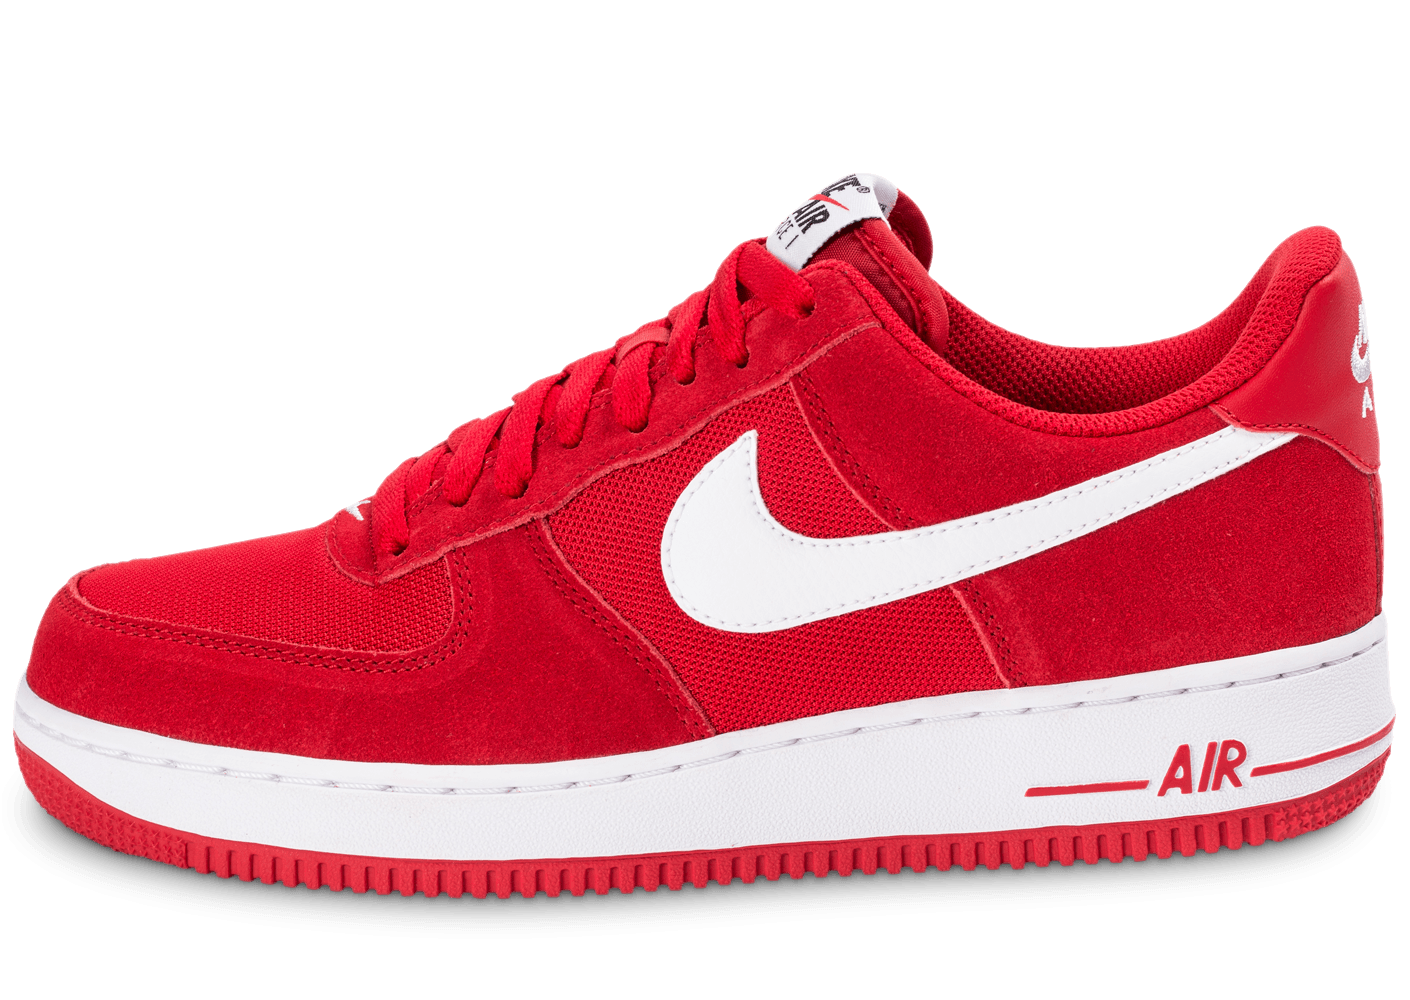 Nike Air Force 1 Suede rouge